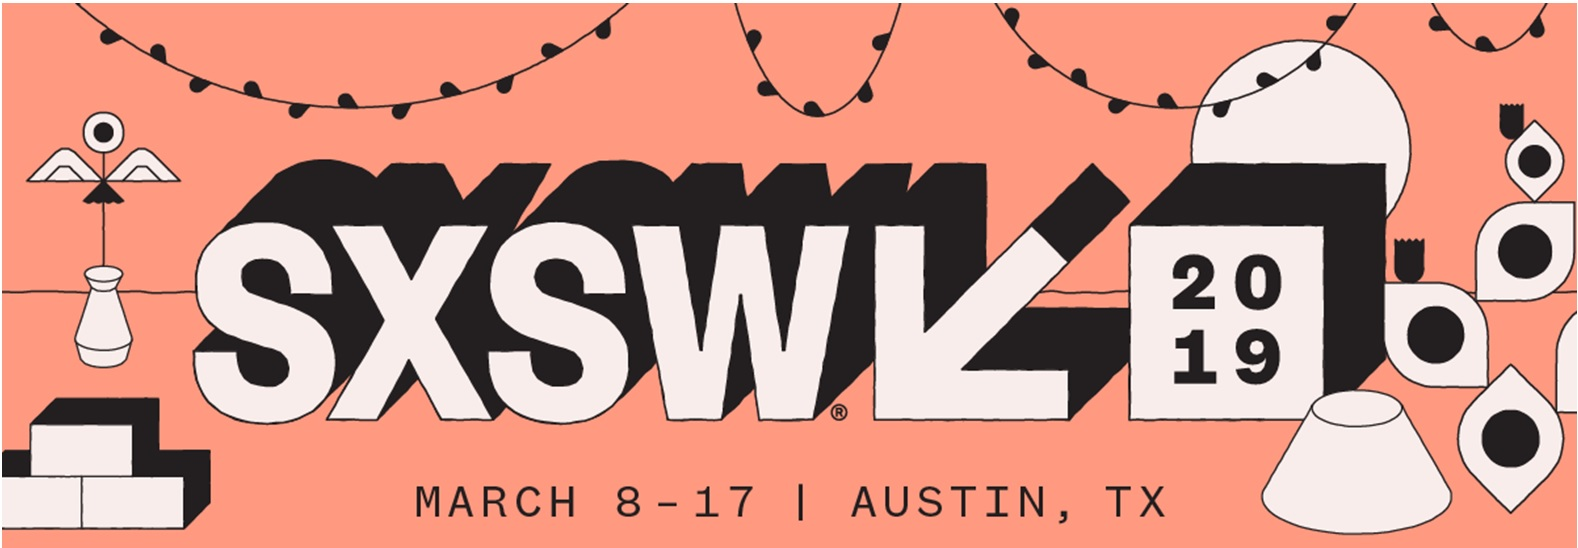 SXSW 2019 Update: Day-By-Day Highlights For Attendees to